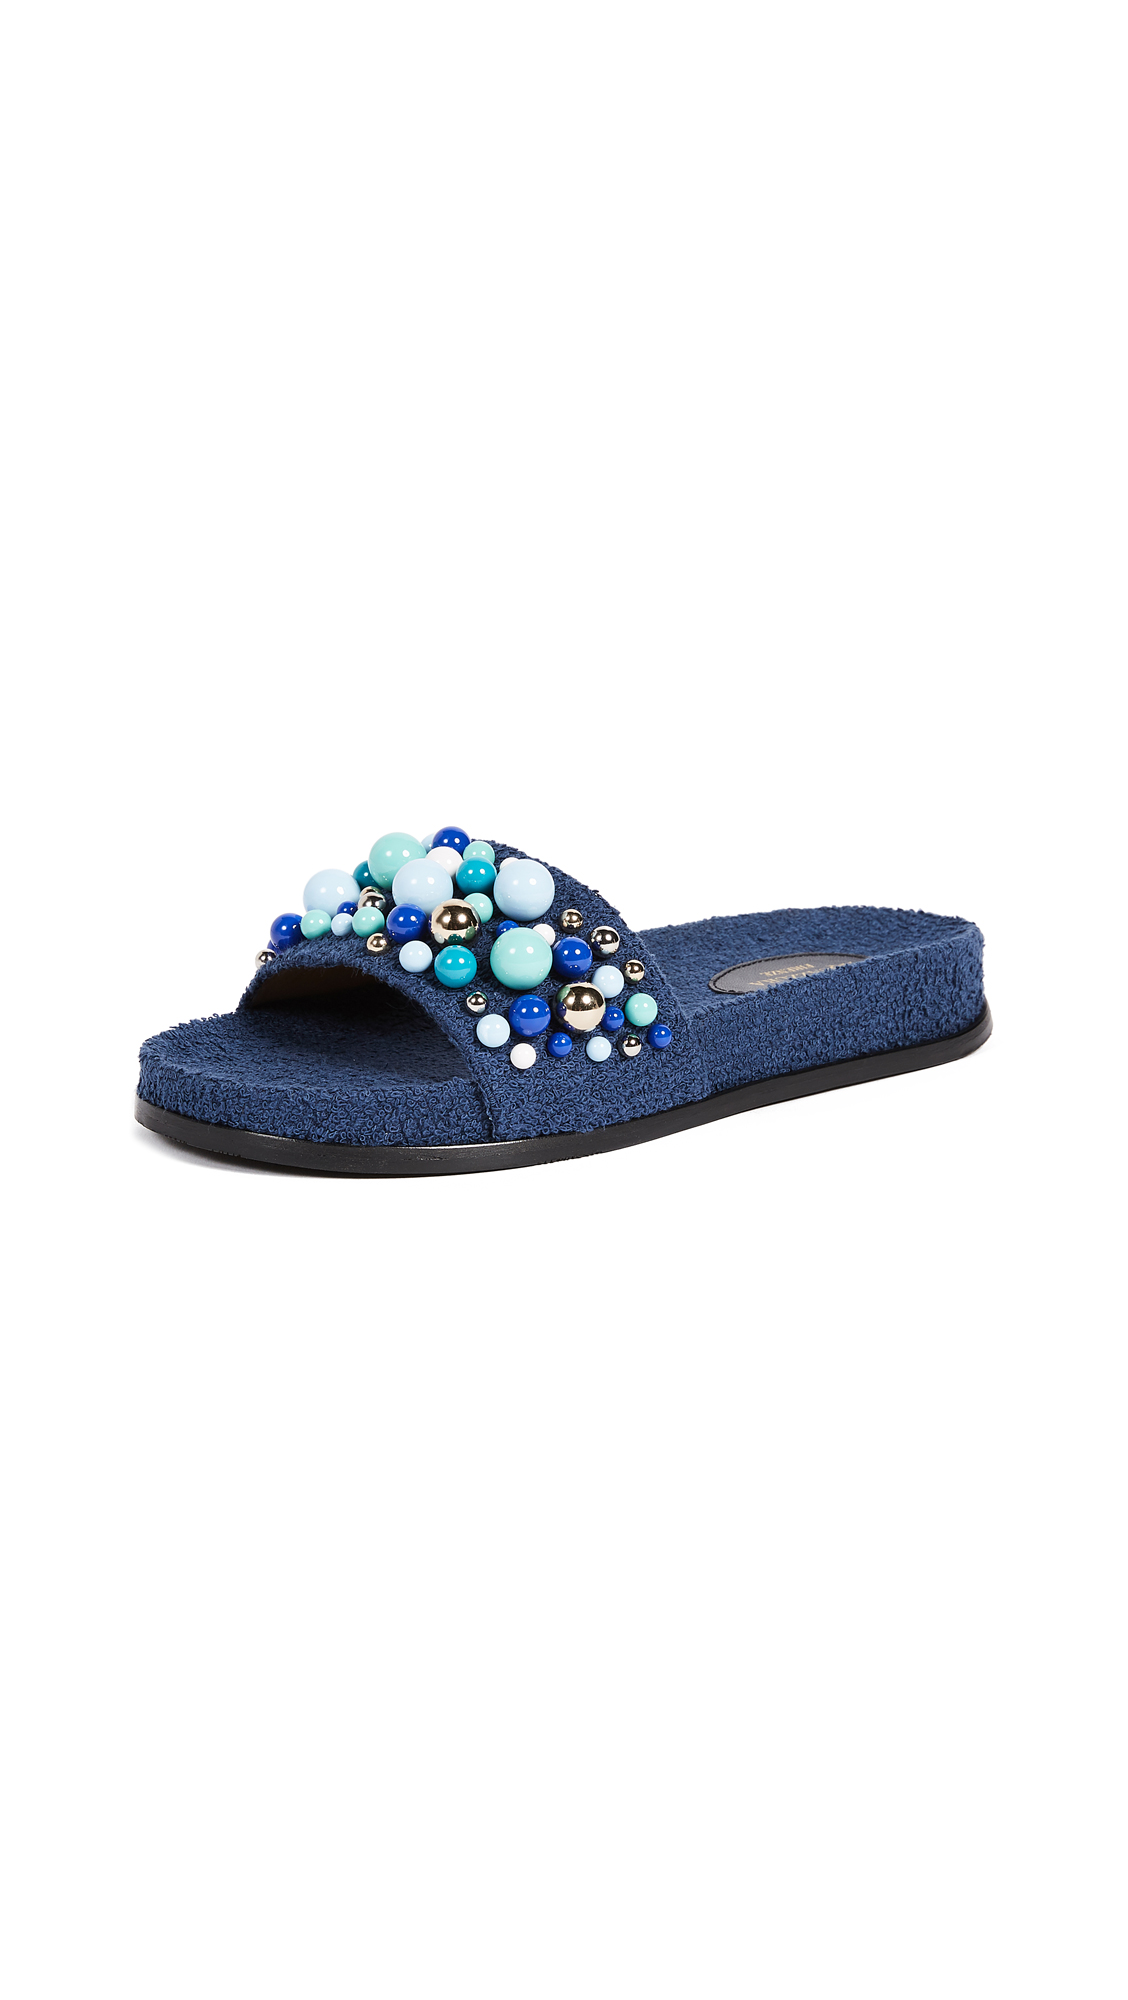 Aquazzura Bon Bon Pool Slides - Navy